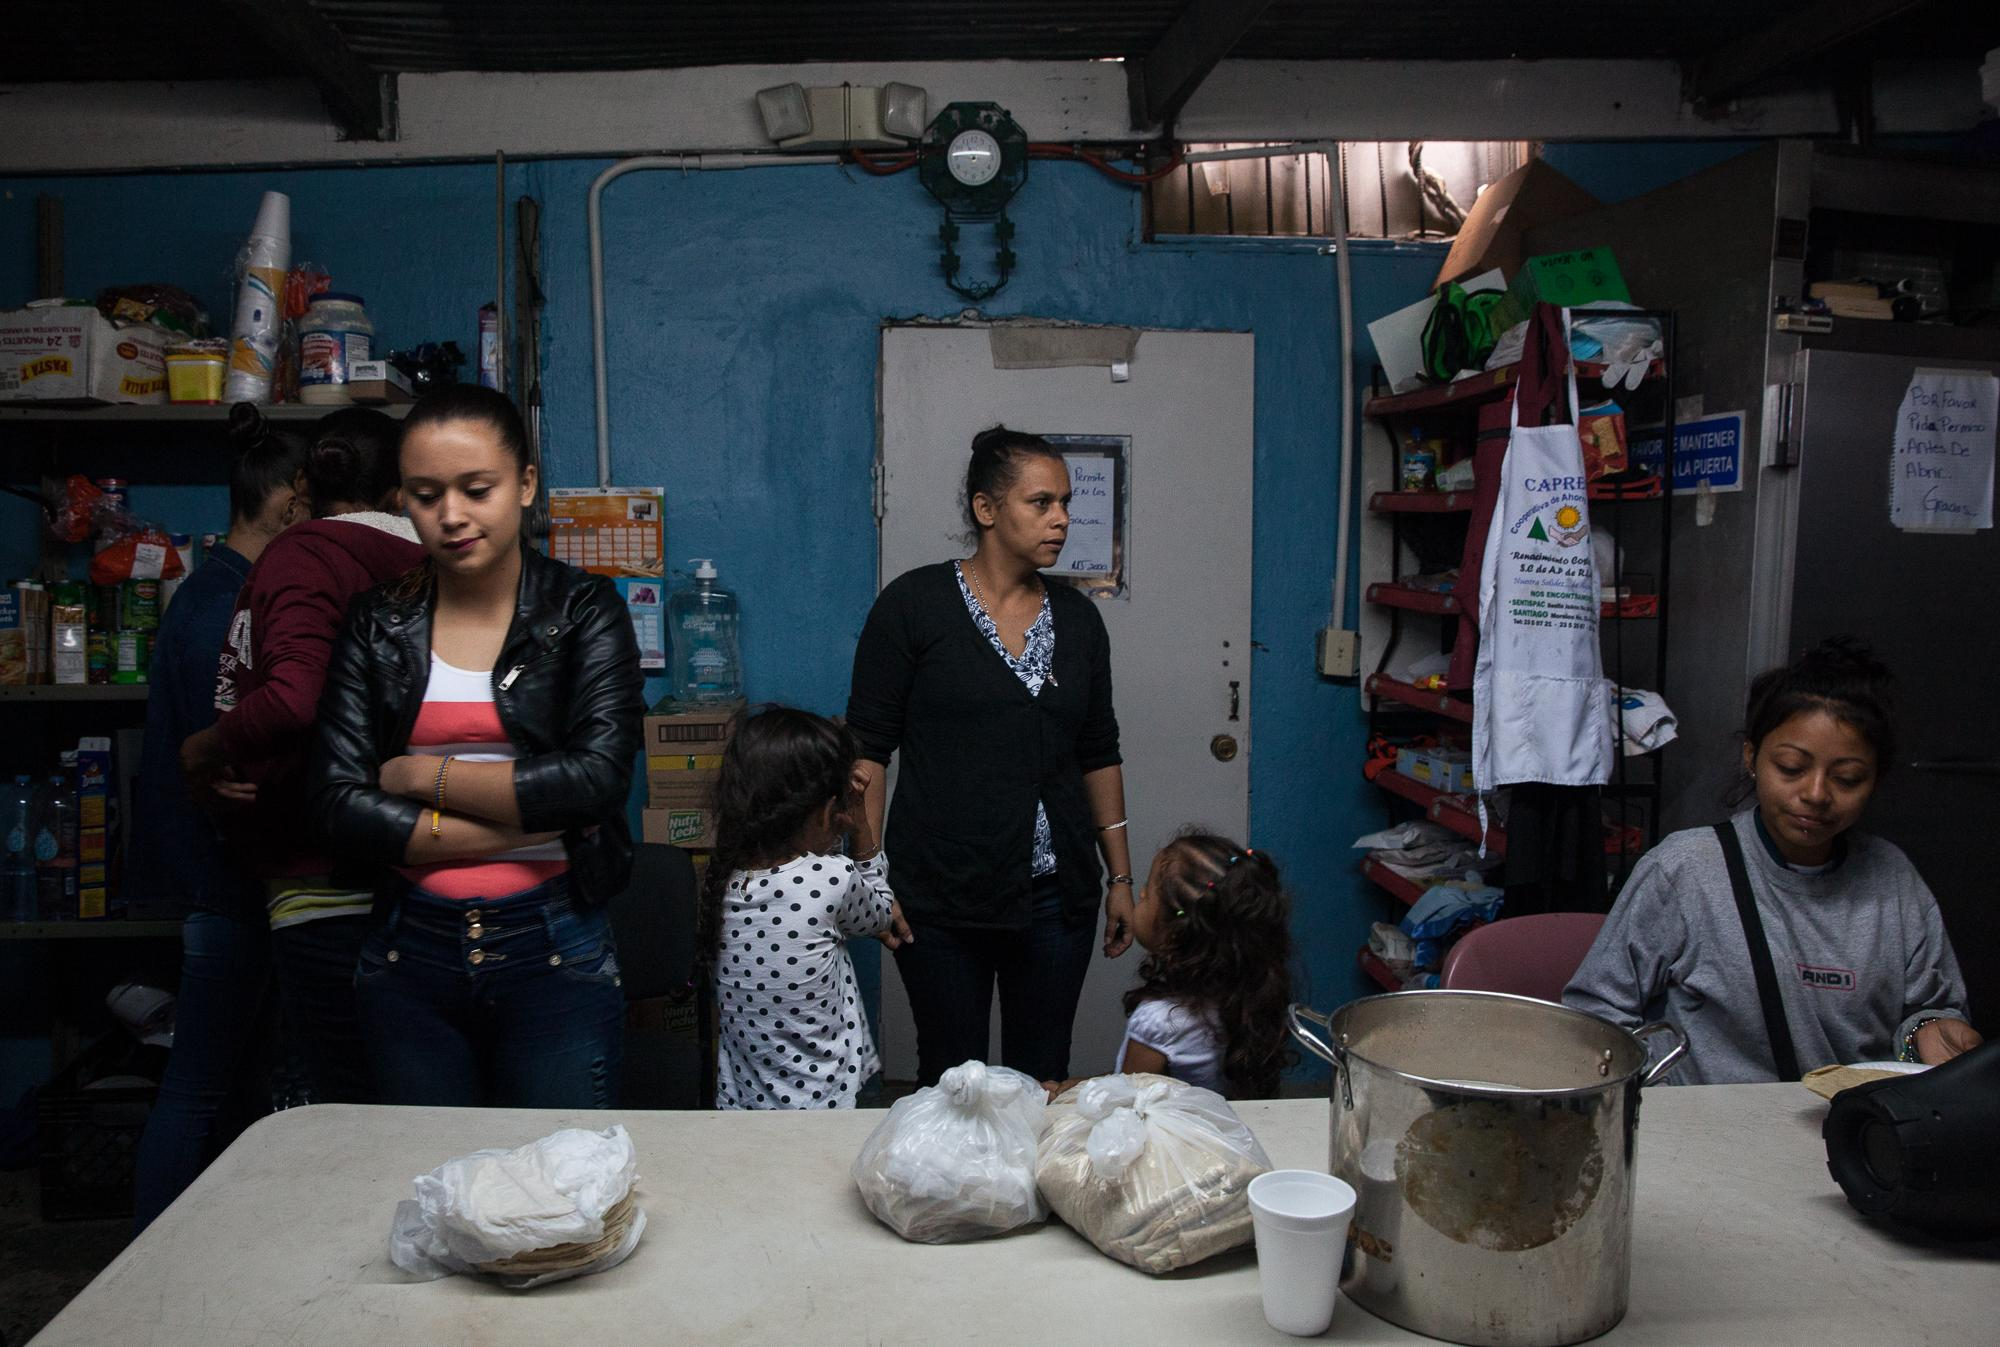 Women and children from Central America in the kitchen at Juventud 2000 shelter in Tijuana, Mexico on April 25, 2018.